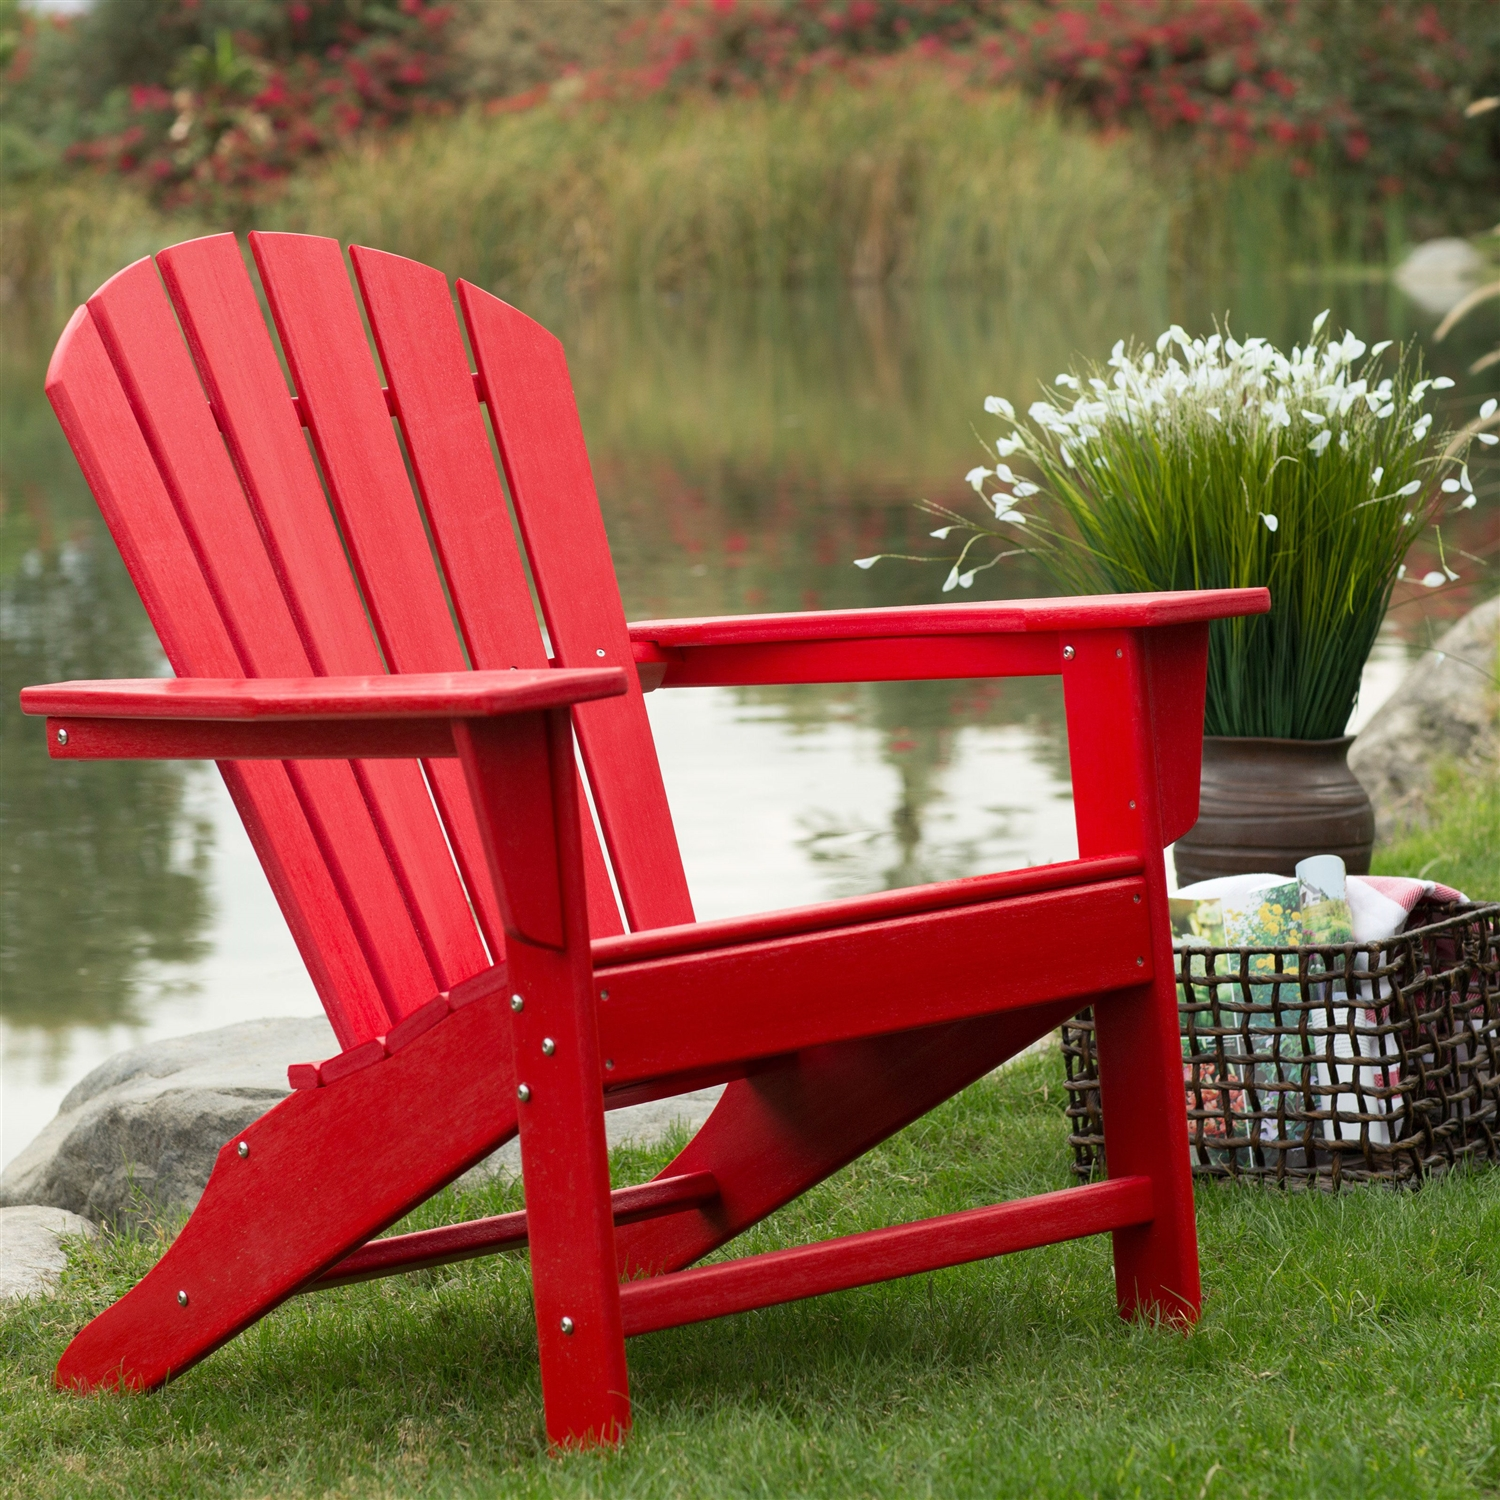 Charmant Outdoor Patio Seating Garden Adirondack Chair In Red Heavy Duty Resin